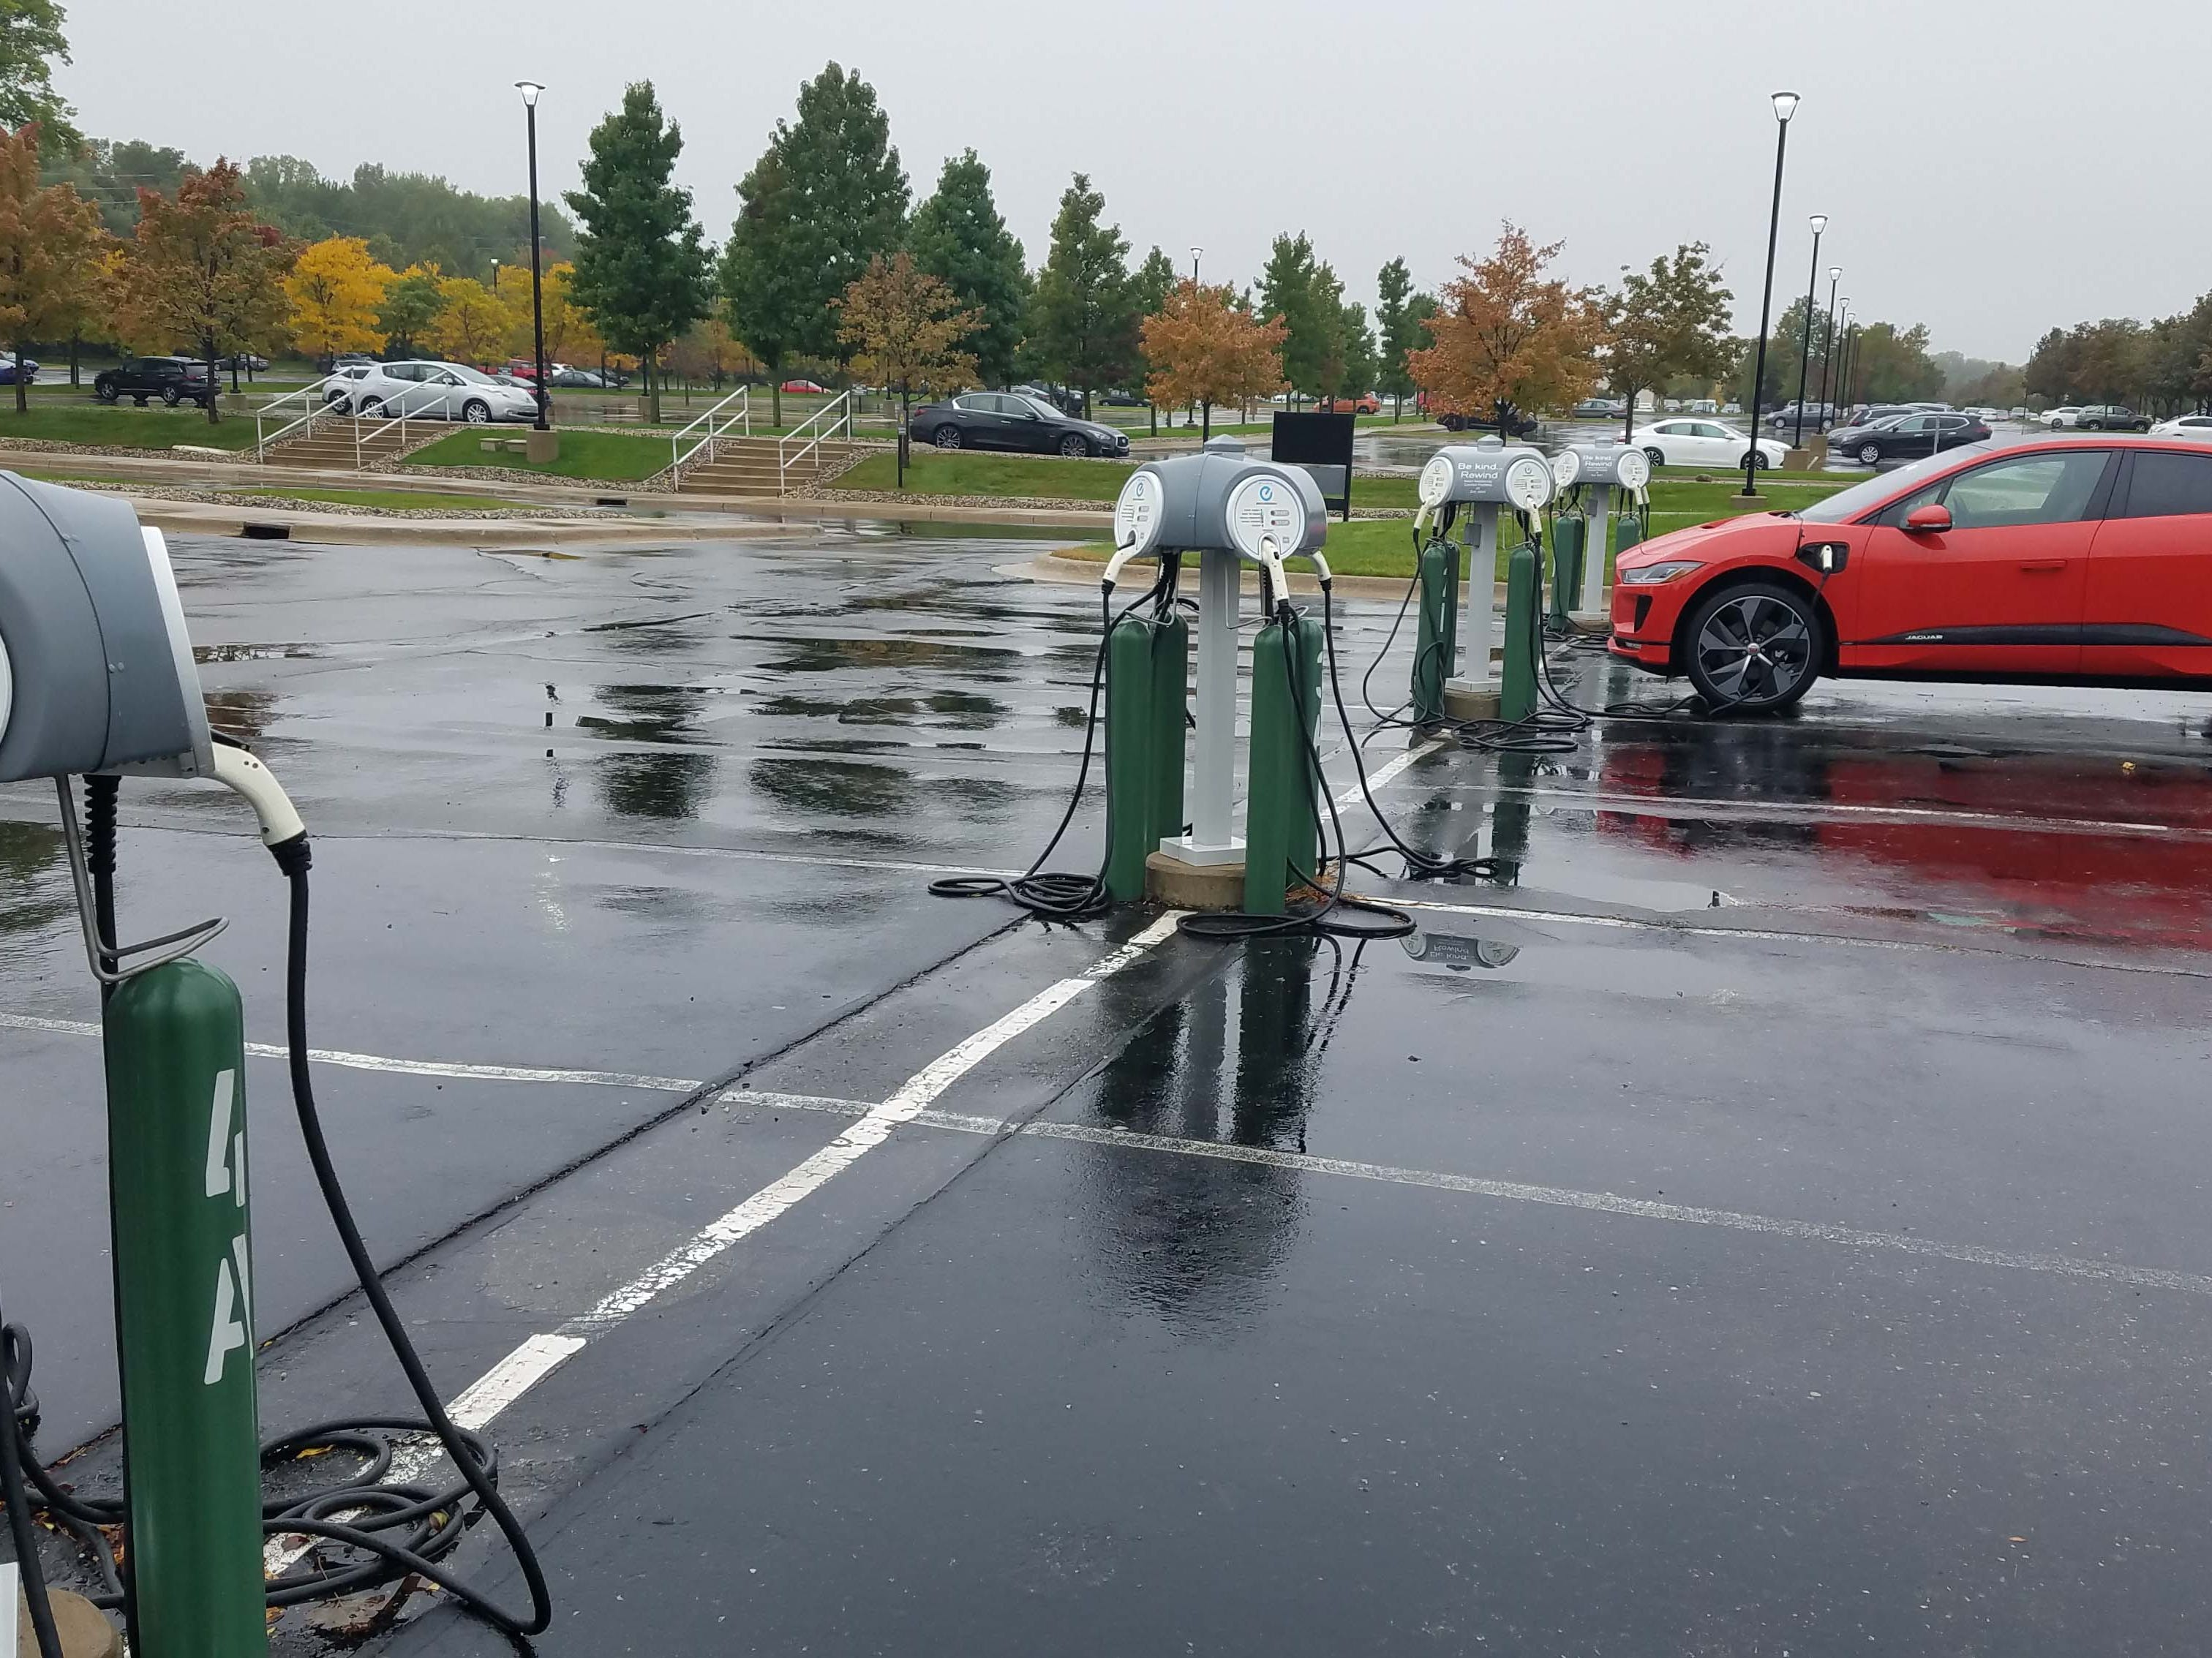 The Nissan tech center's 240-volt chargers are empty Saturday morning - but jammed during the week by employees charging their cars.